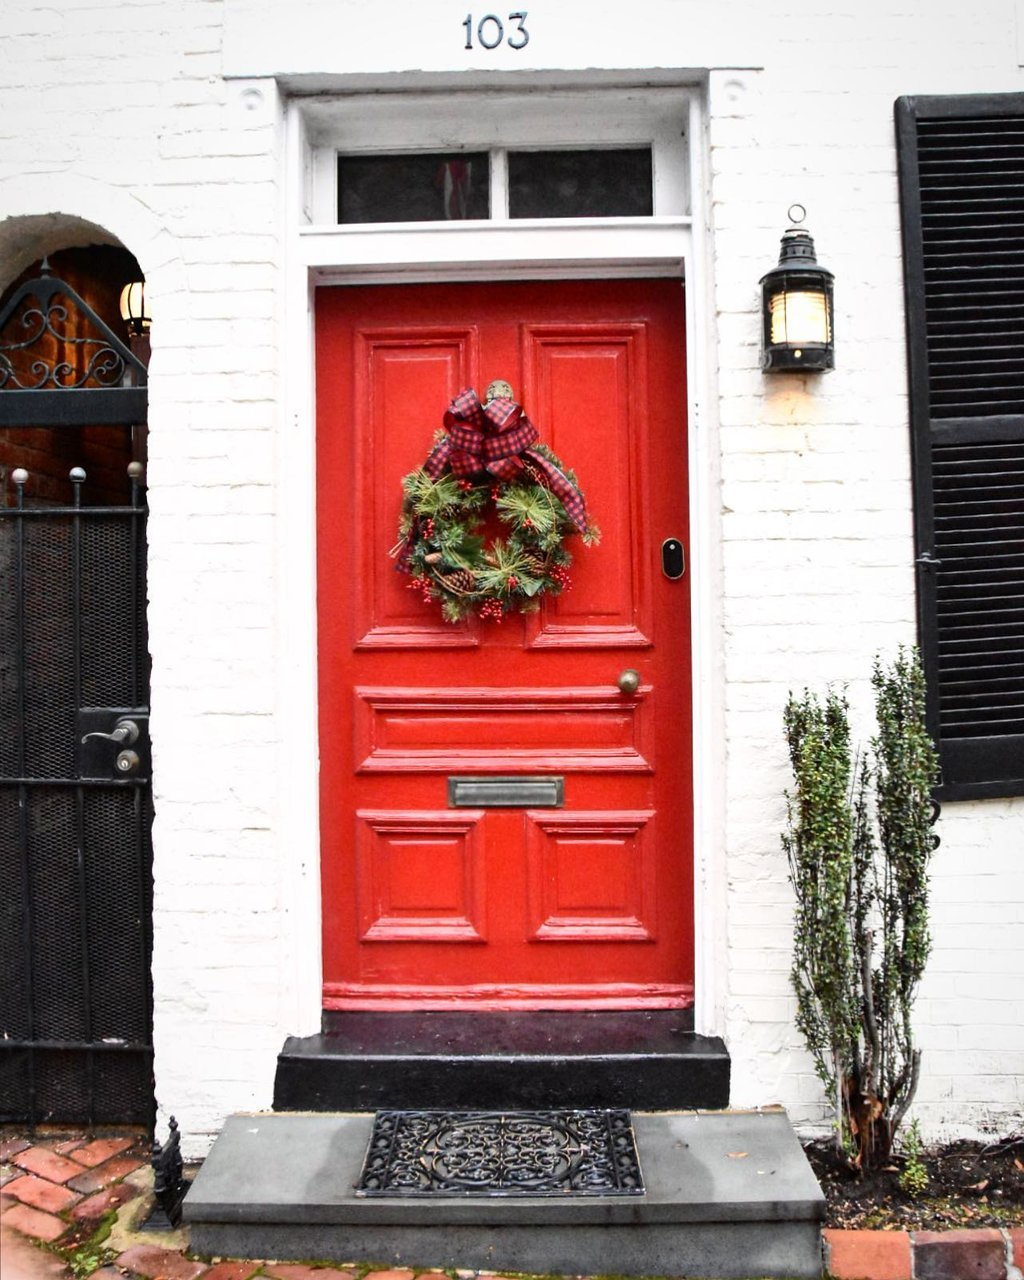 @s.d.huntington - Red door with Holiday Wreath